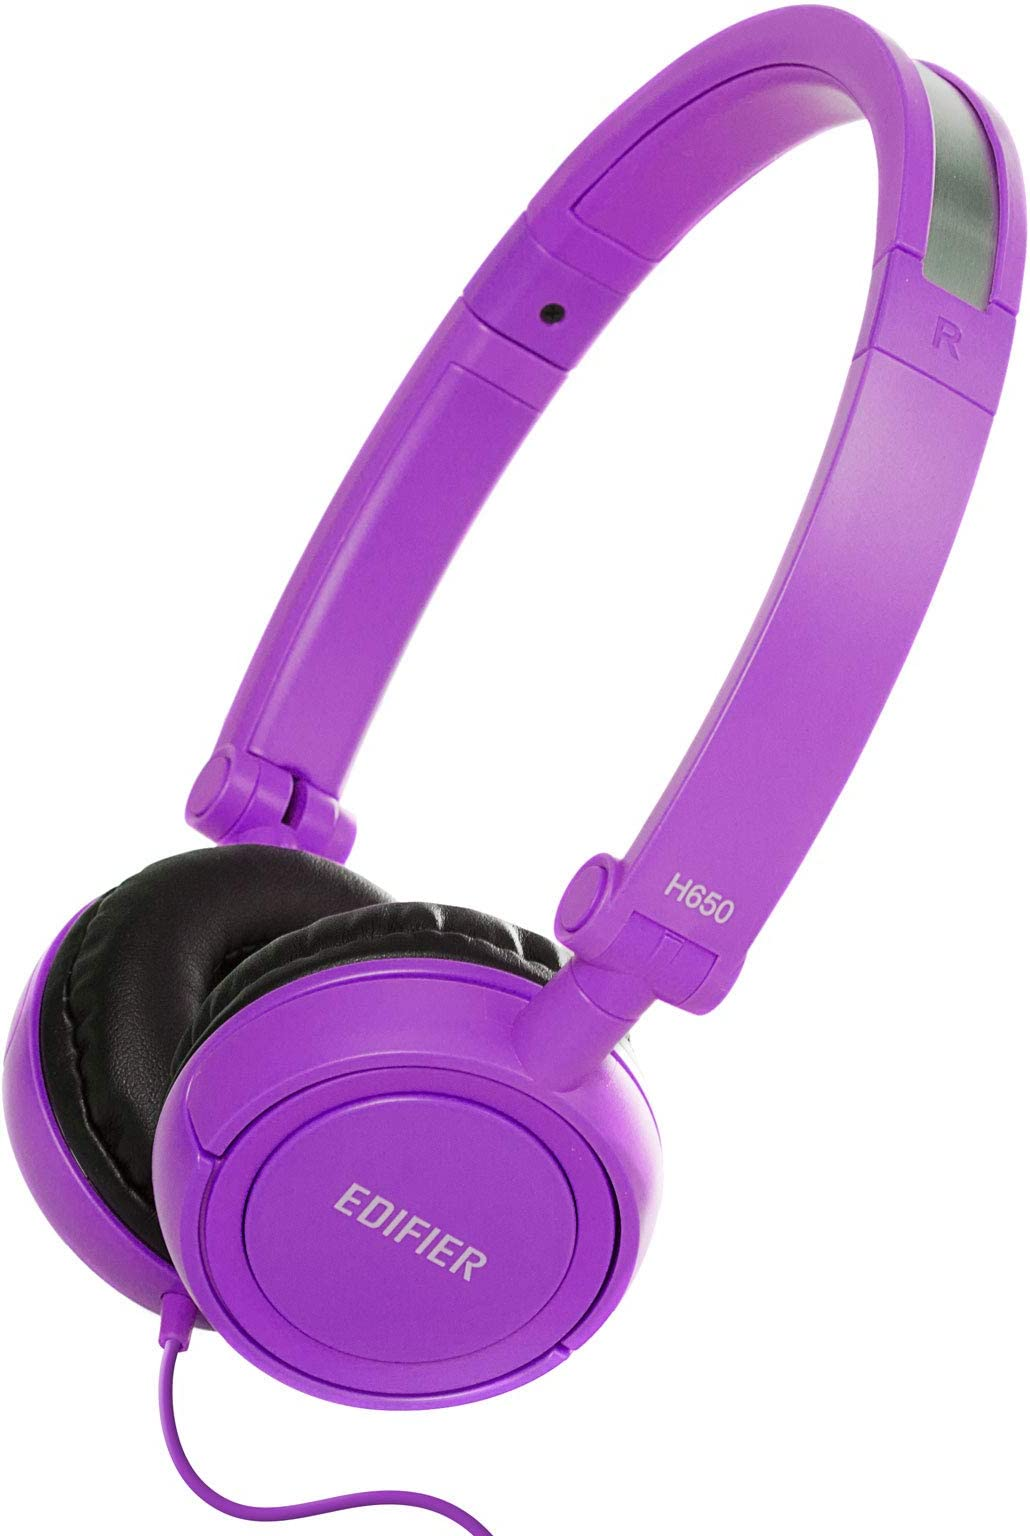 Edifier H650 Headphones - Hi-Fi On-Ear Wired Stereo Headphone, Ultralight and Fold-able - Purple/Violet